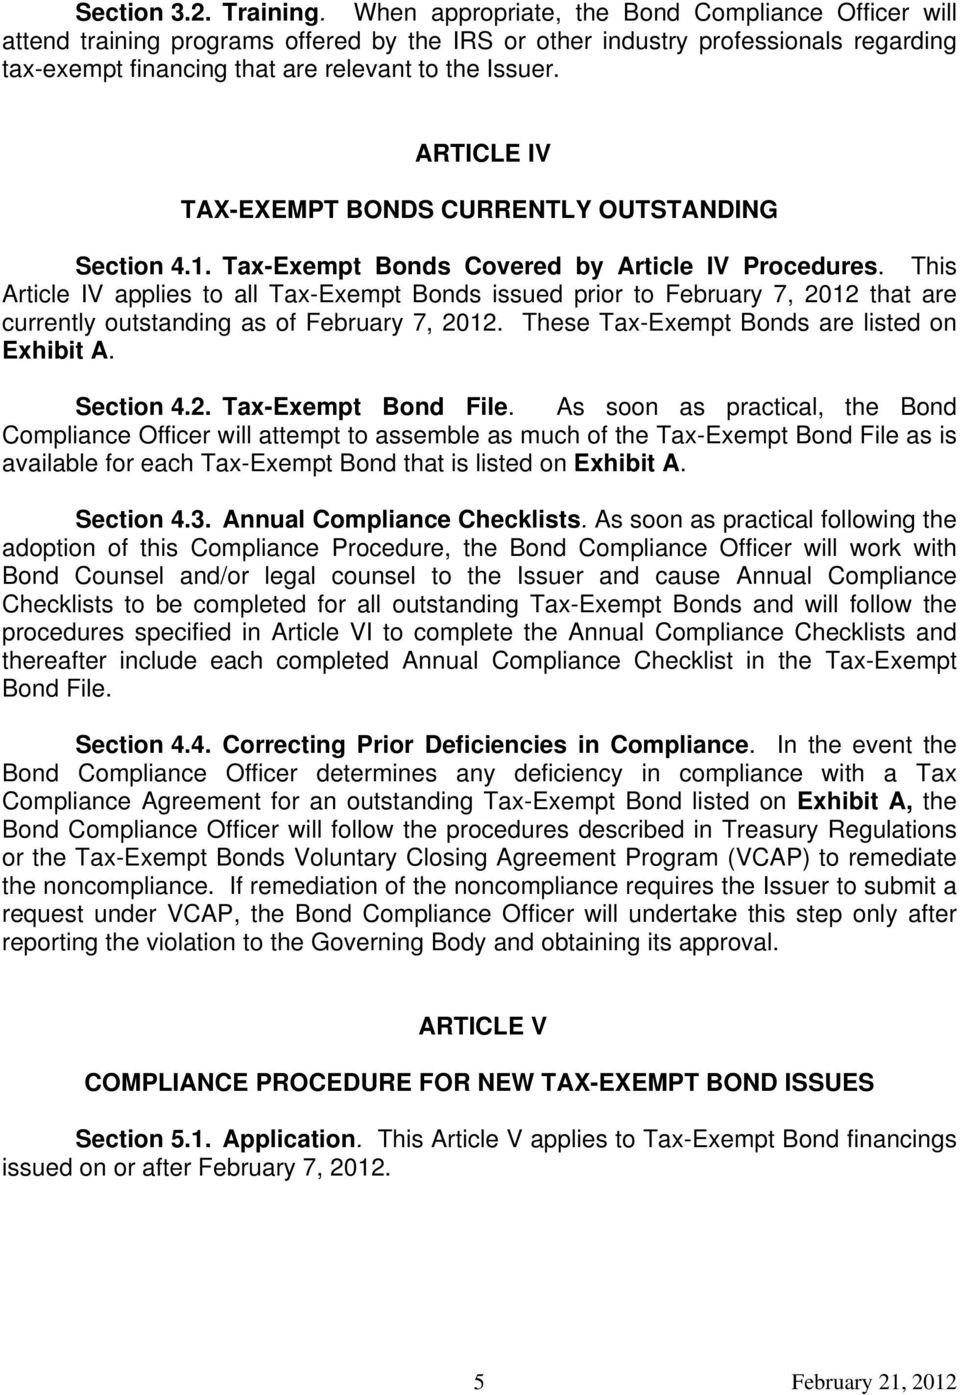 ARTICLE IV TAX-EXEMPT BONDS CURRENTLY OUTSTANDING Section 4.1. Tax-Exempt Bonds Covered by Article IV Procedures.